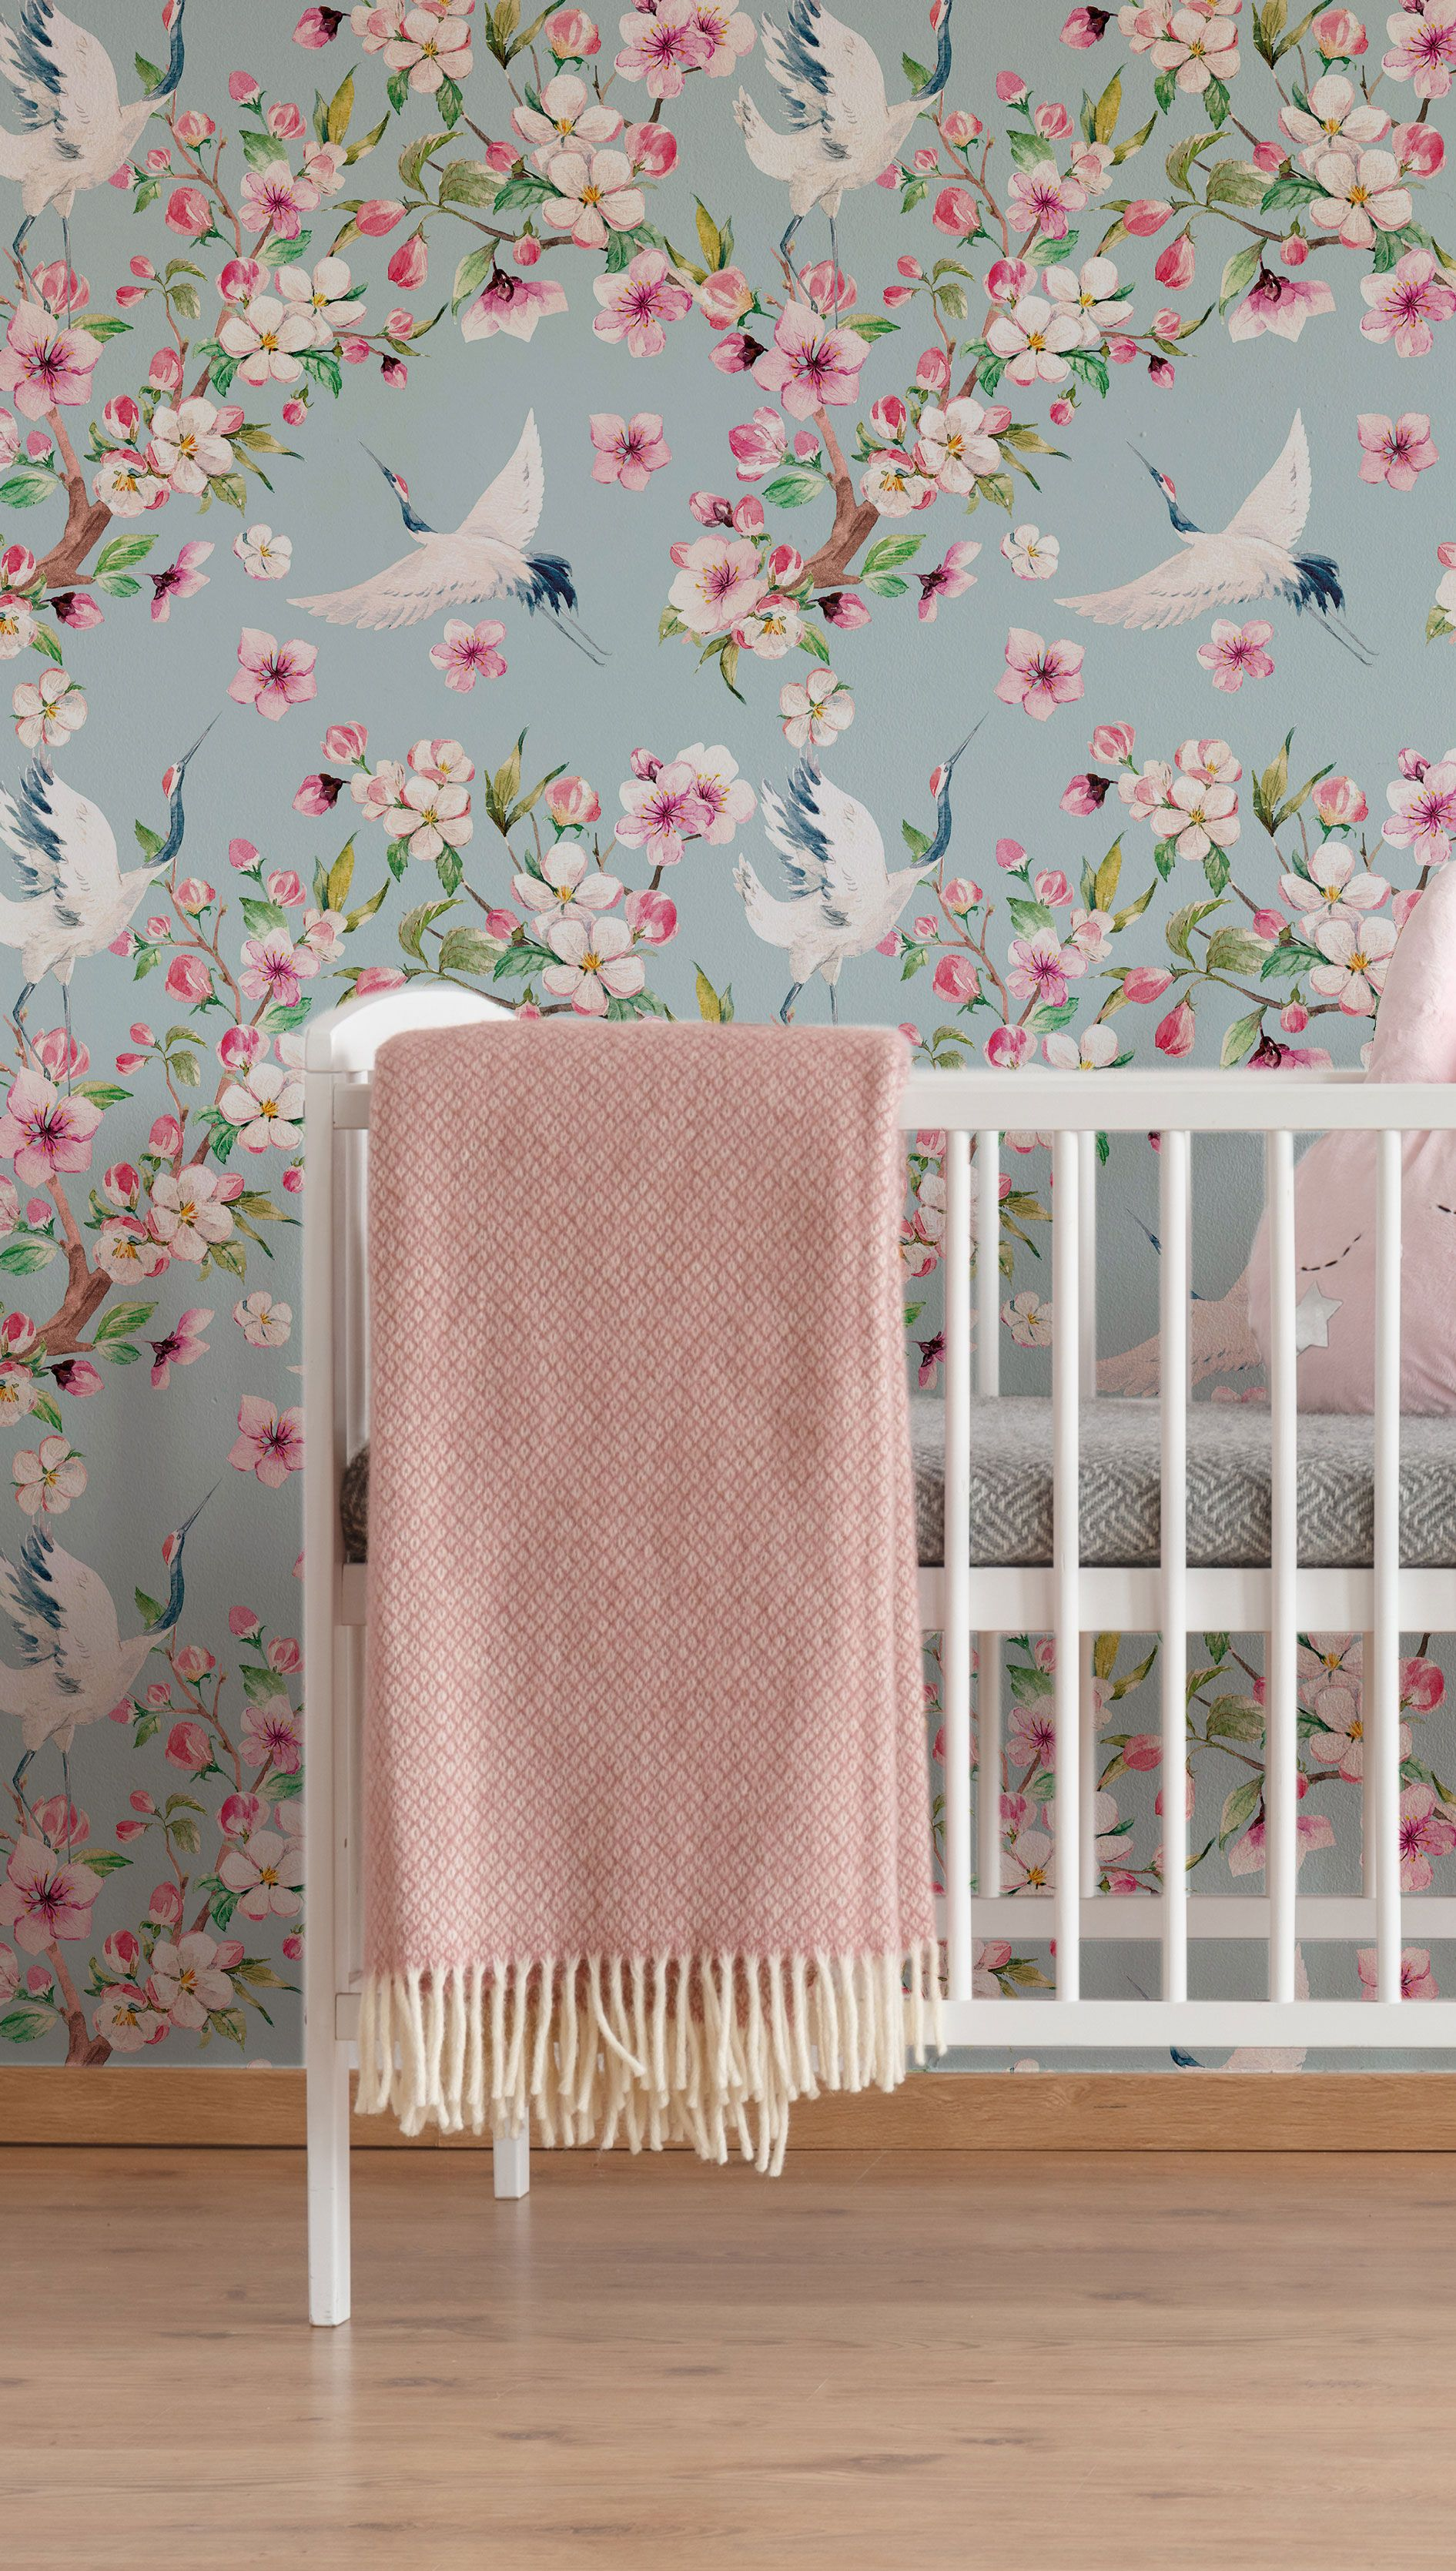 Blue Japanese Animal Peel And Stick Fabric Removable Wallpaper 7588 Nursery Decor Girl Removable Wallpaper Blue Backdrops